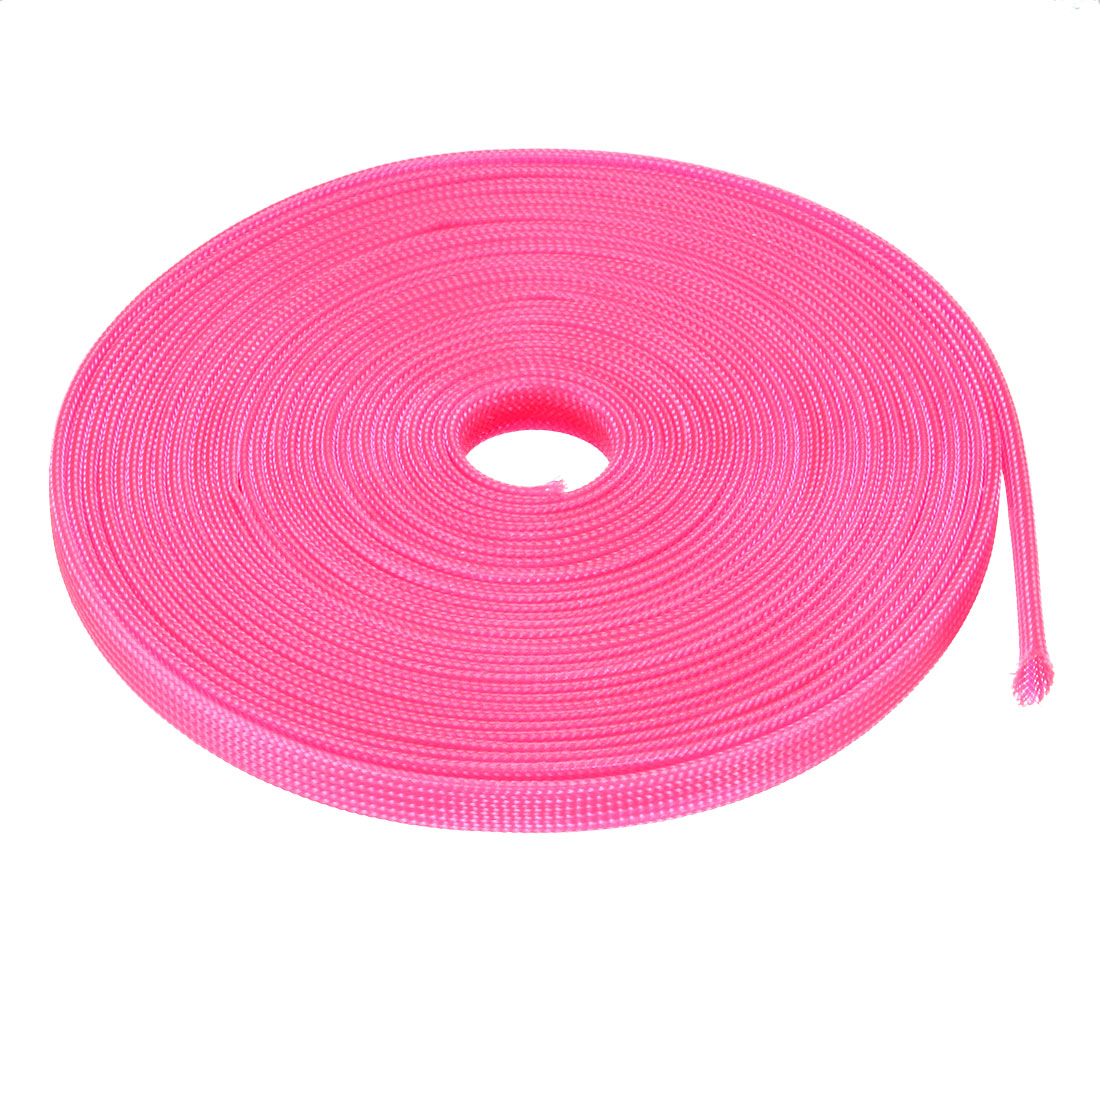 6mm Dia Tight Braided PET Expandable Sleeving Cable Wire Wrap Sheath Pink 10M